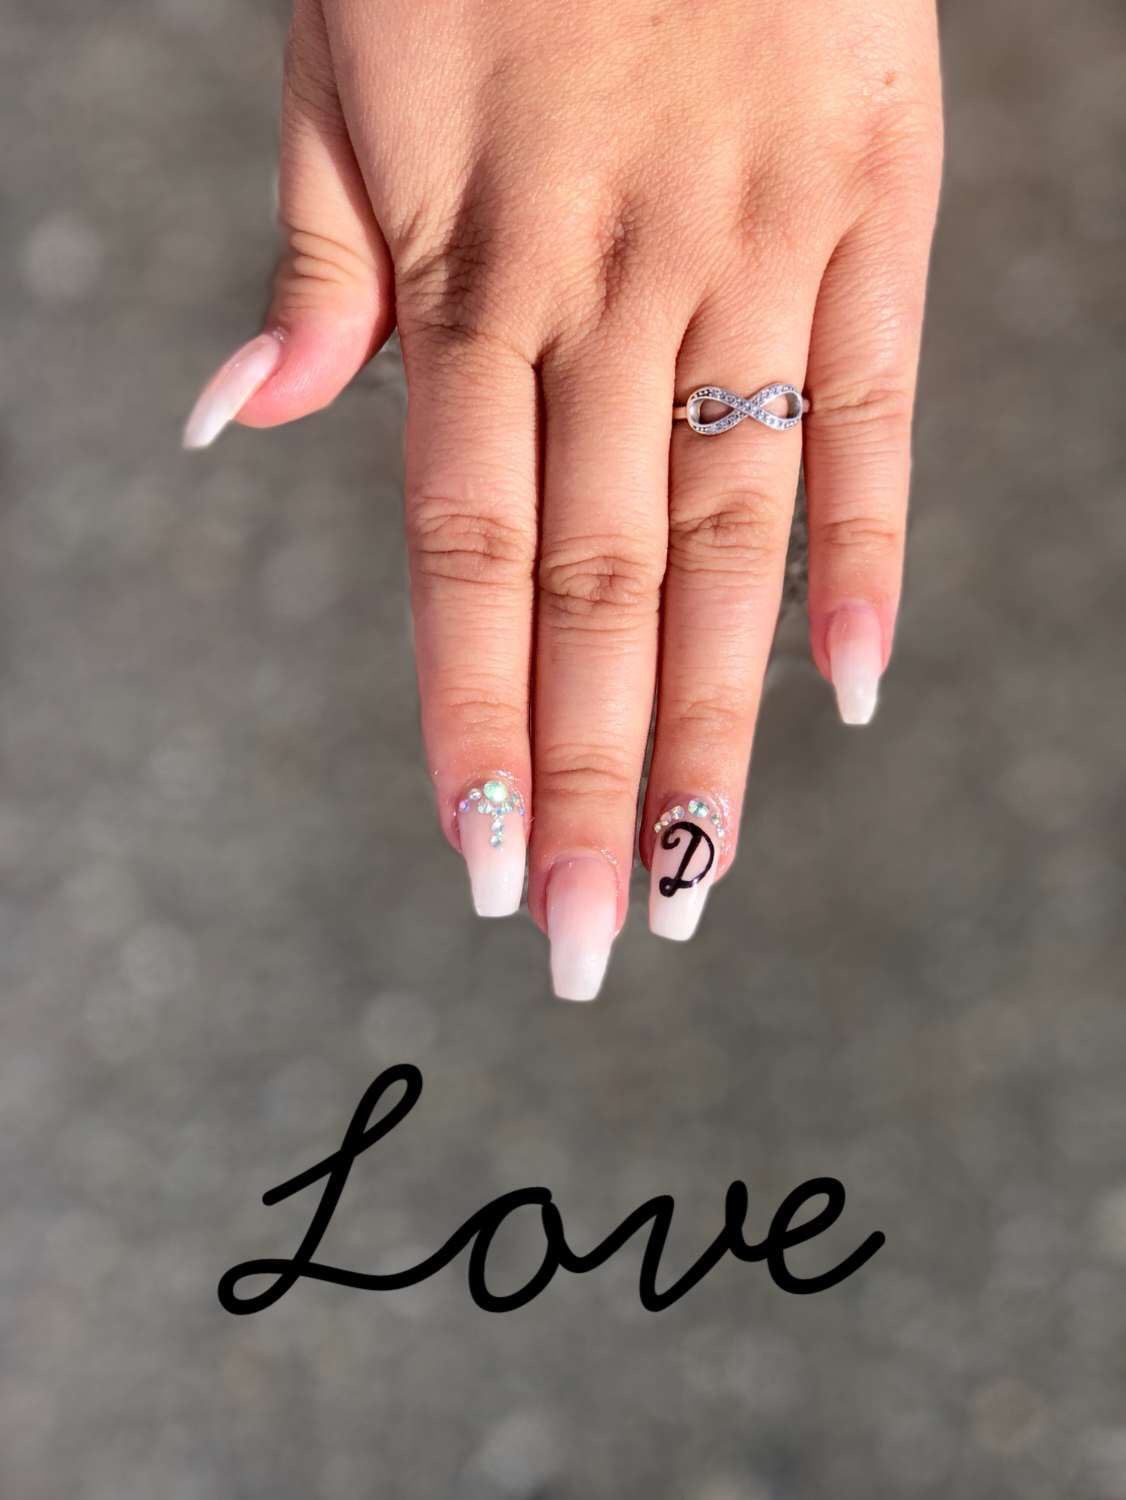 Boyfriend Initials On Nails Cute Acrylic Nails Rhinestone Nails Birthday Nails